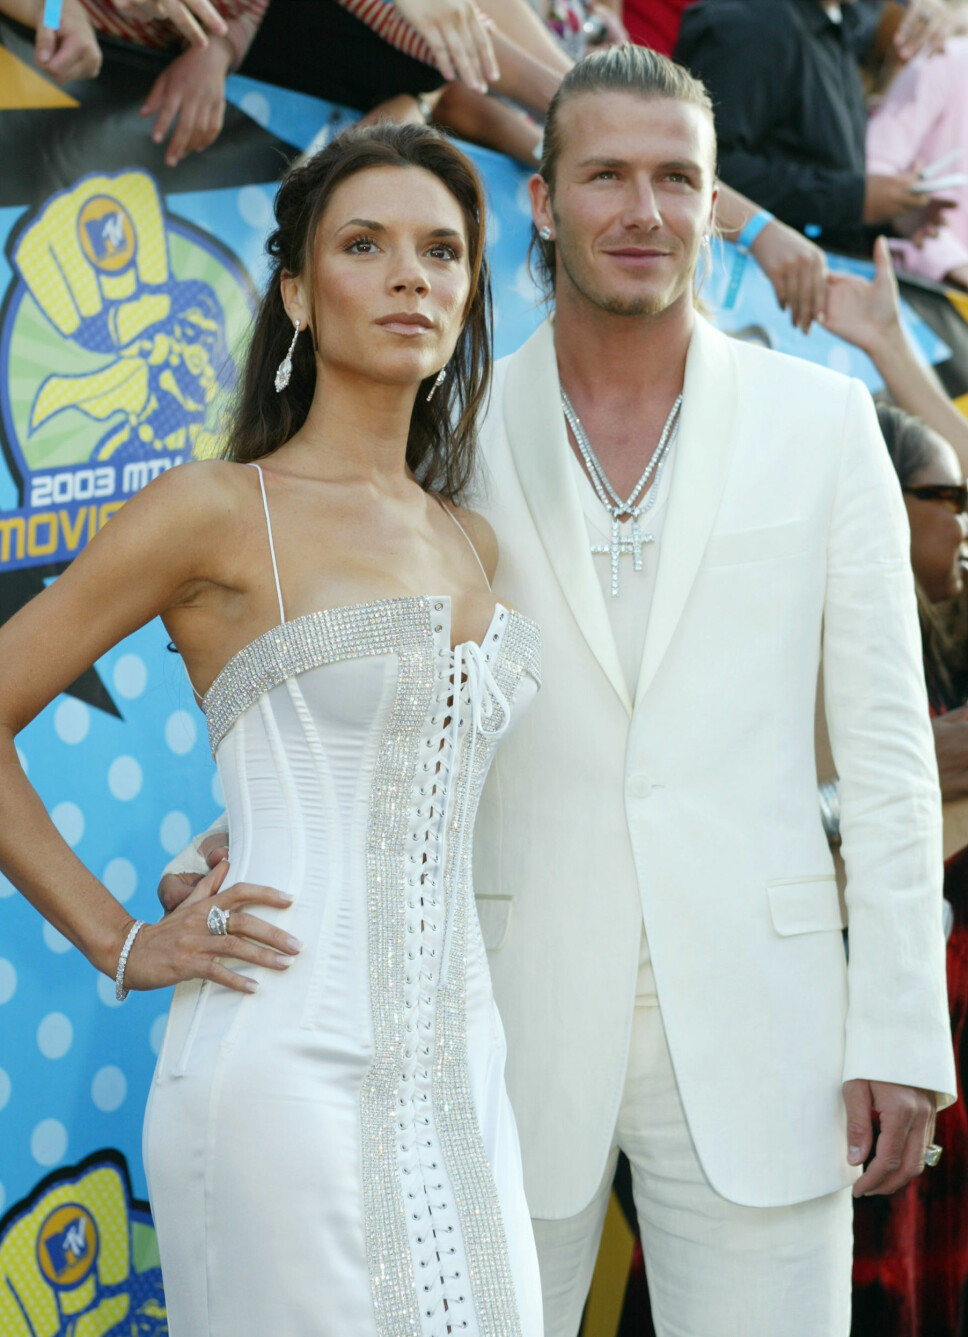 Victoria og David Beckham koordinerte gjerne antrekkene sine. Her er paret fotografert under MTV Movie Awards, i Los Angeles, i 2003.